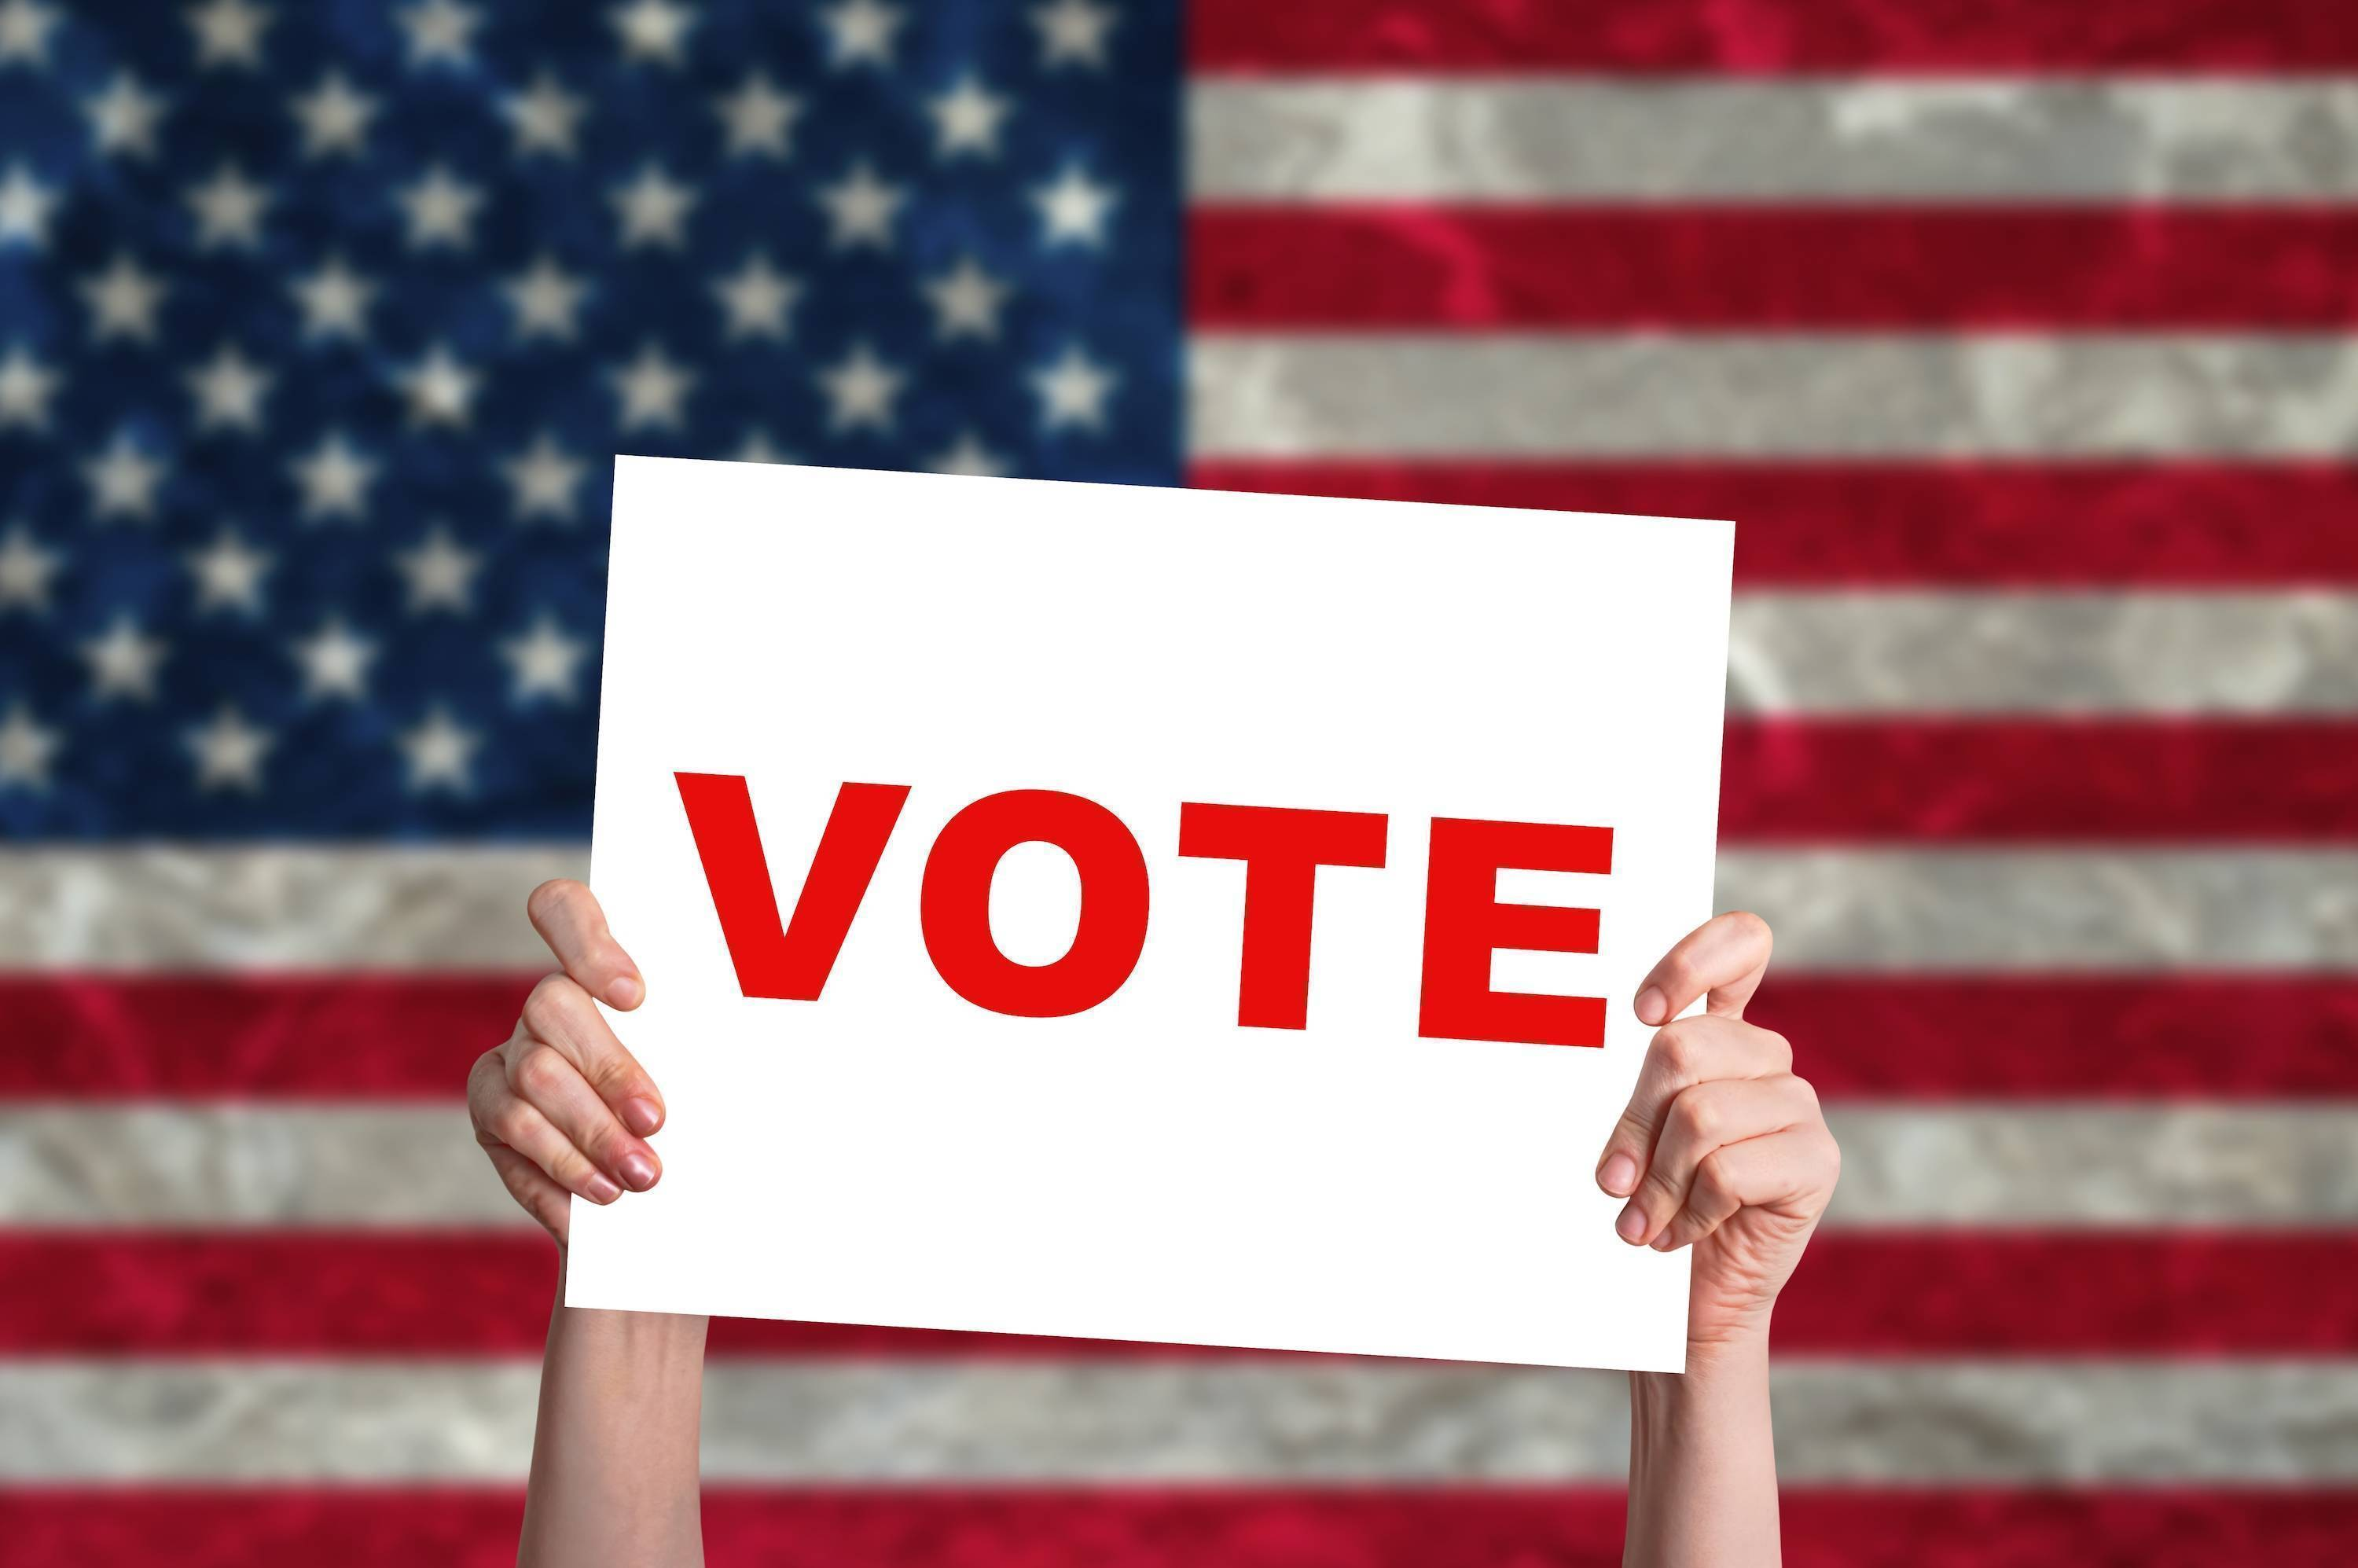 Essex County Clerk Sponsors Early Voting By Mail (VBM) Centers